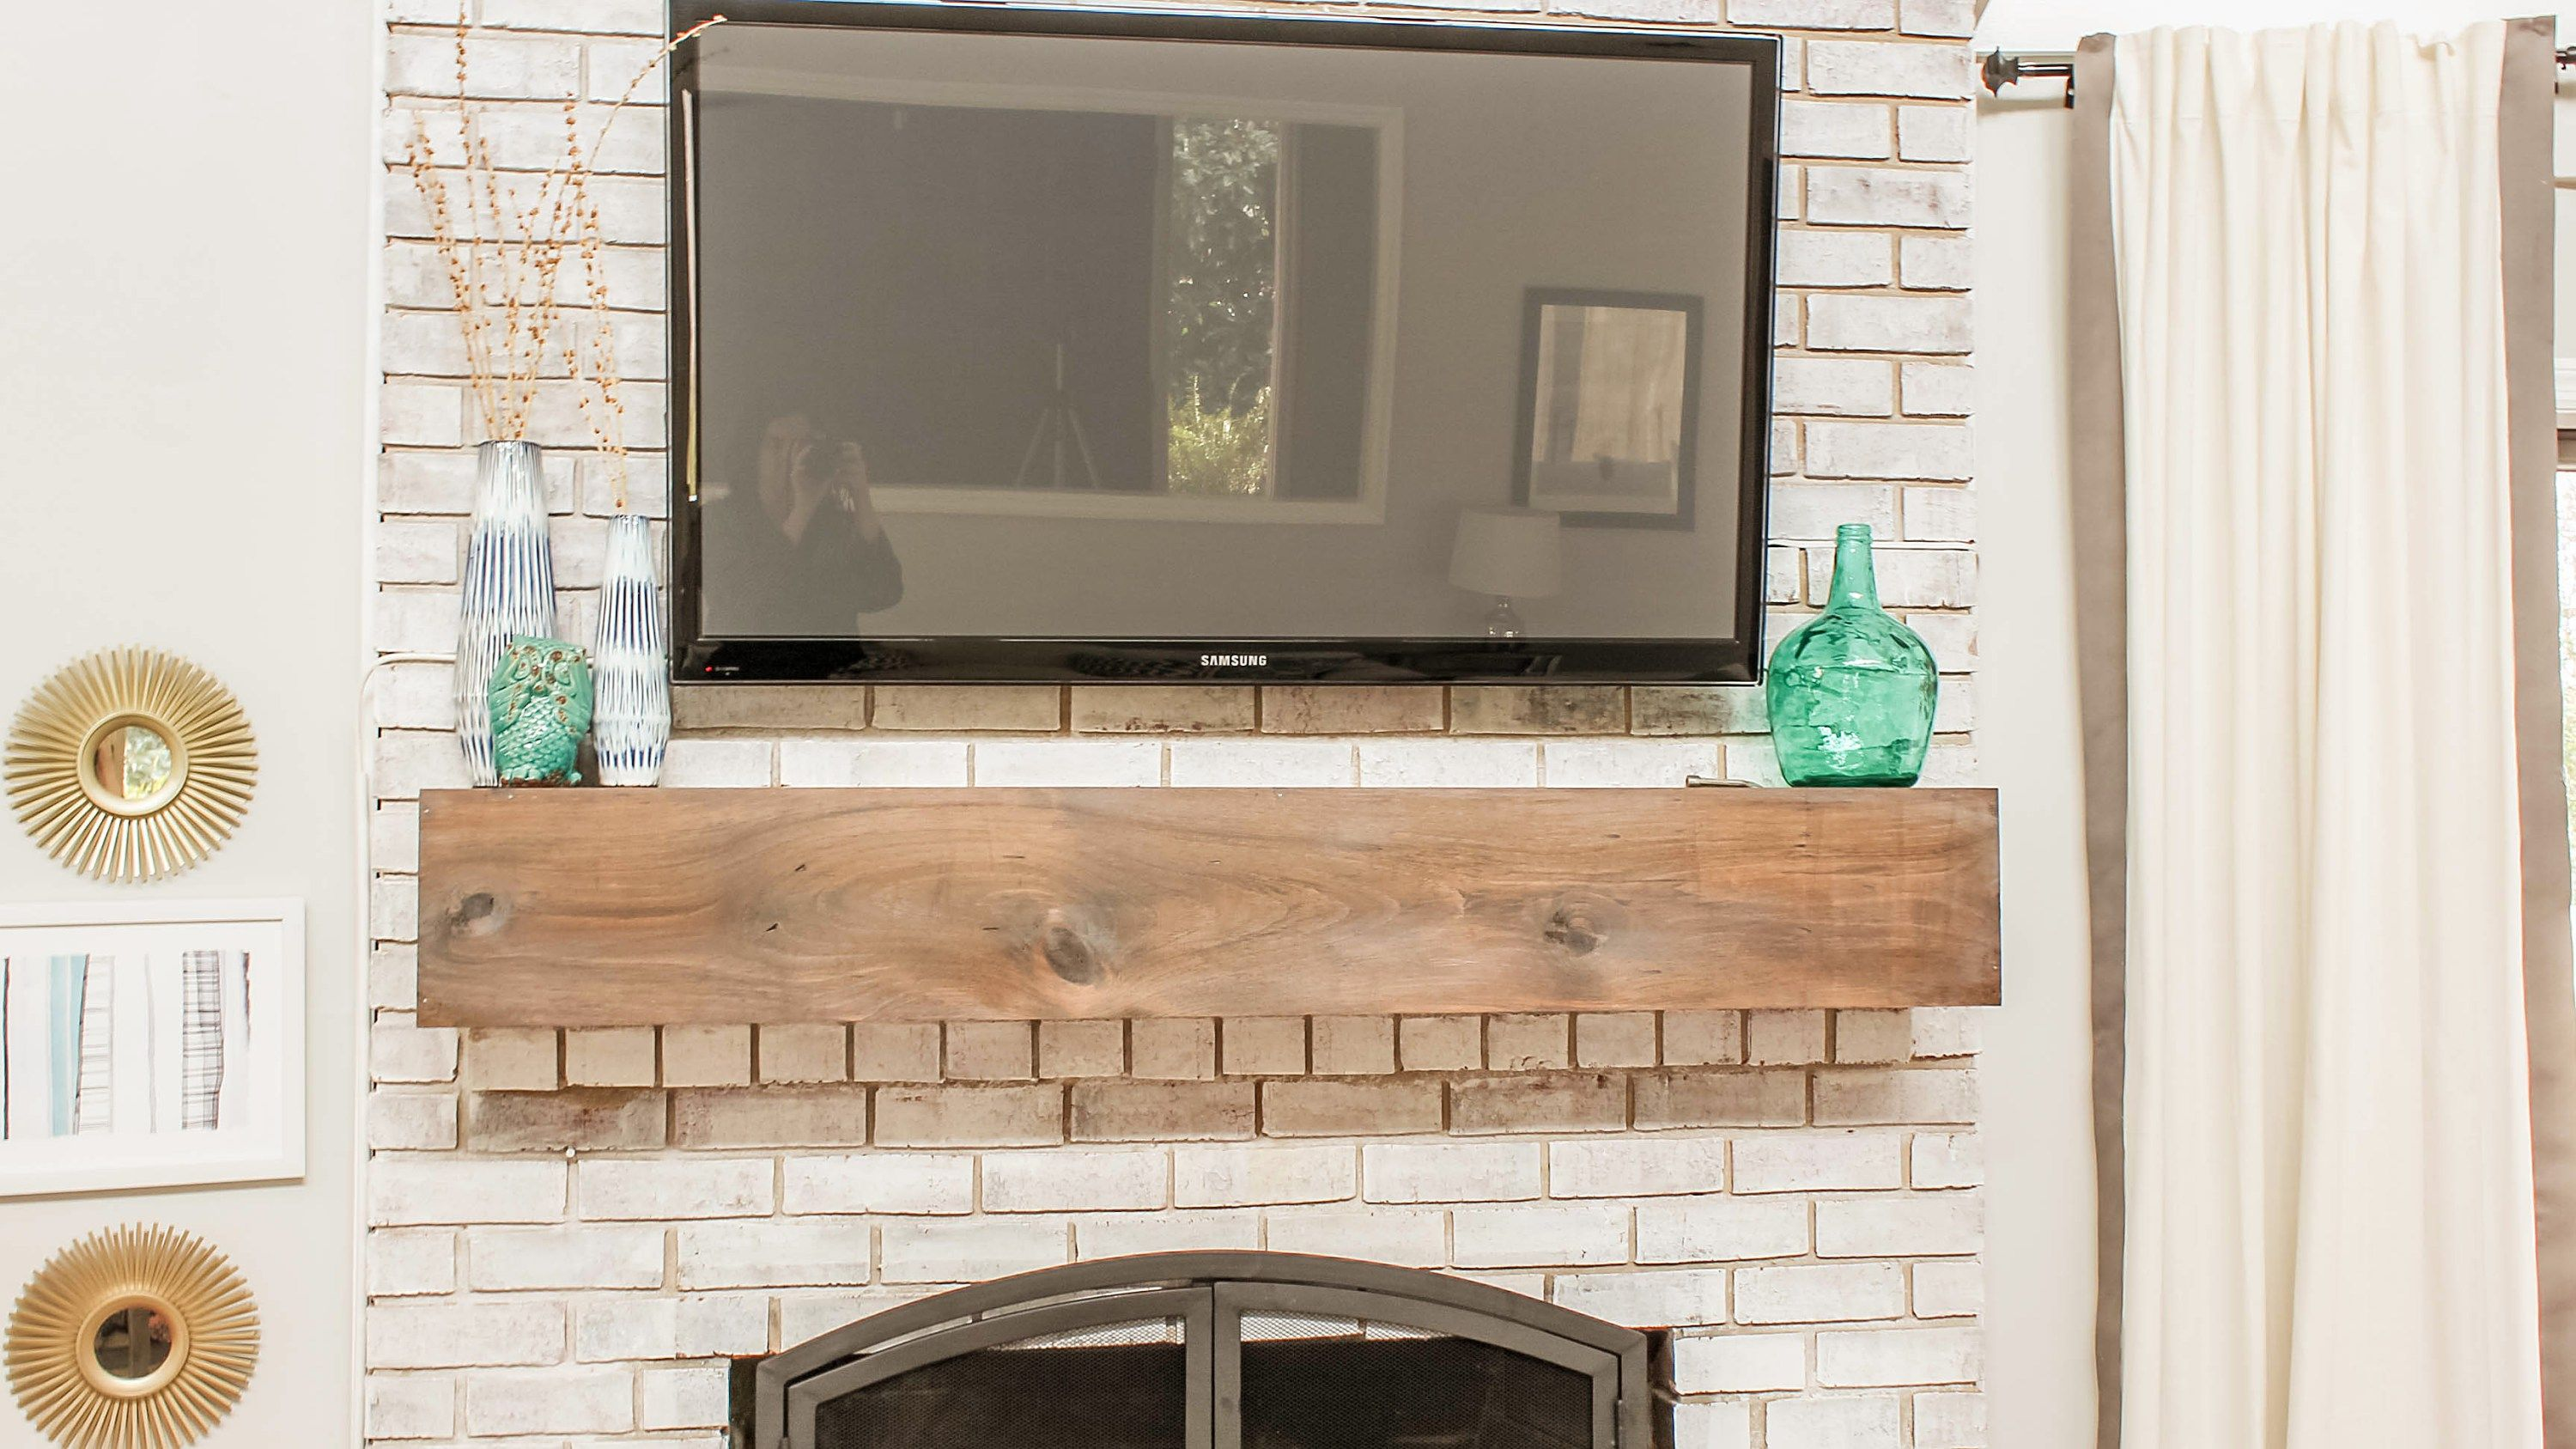 How To Mount A Tv Over Brick Fireplace And Hide The Wires